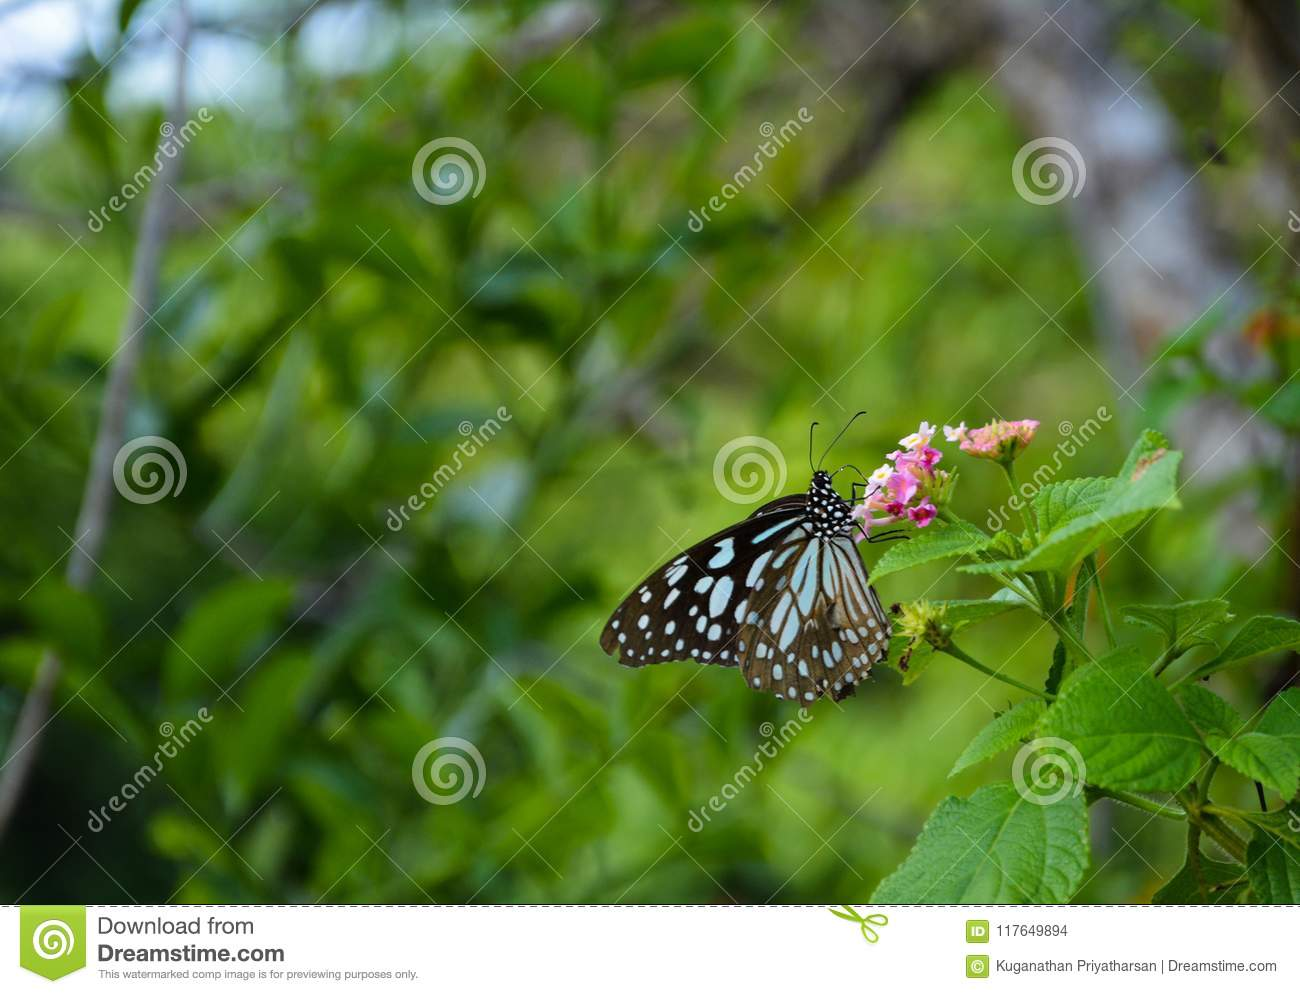 Blue tiger butterfly and Lantana plant